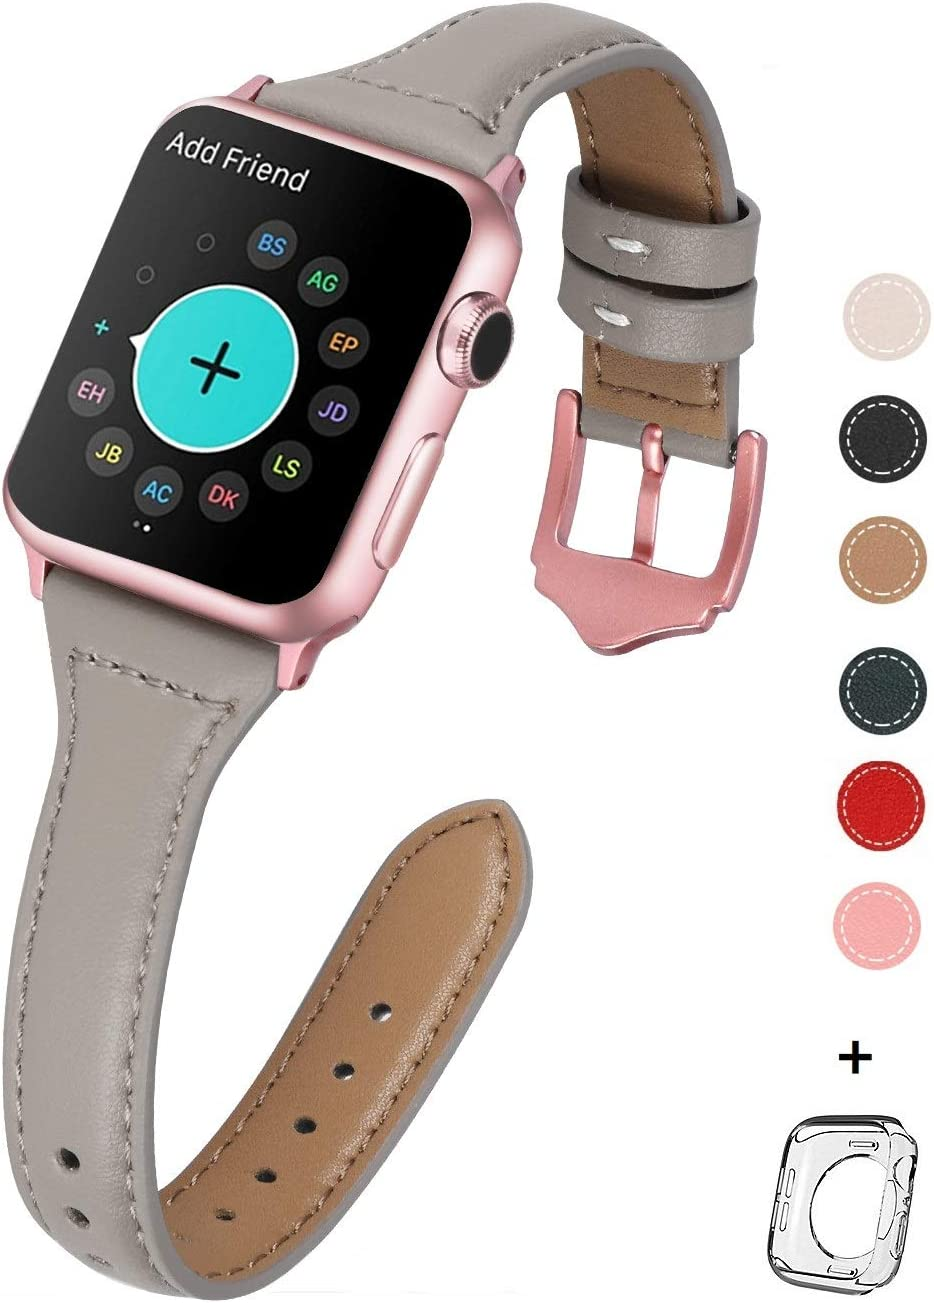 HUAFIY Leather Bands Compatible with Apple Watch Band 38mm 40mm, Top Grain Leather Band Slim & Thin Wristband for iWatch Series 5/4/3/2/1 (French Grey/Rose Gold Buckle, 38mm40mm)